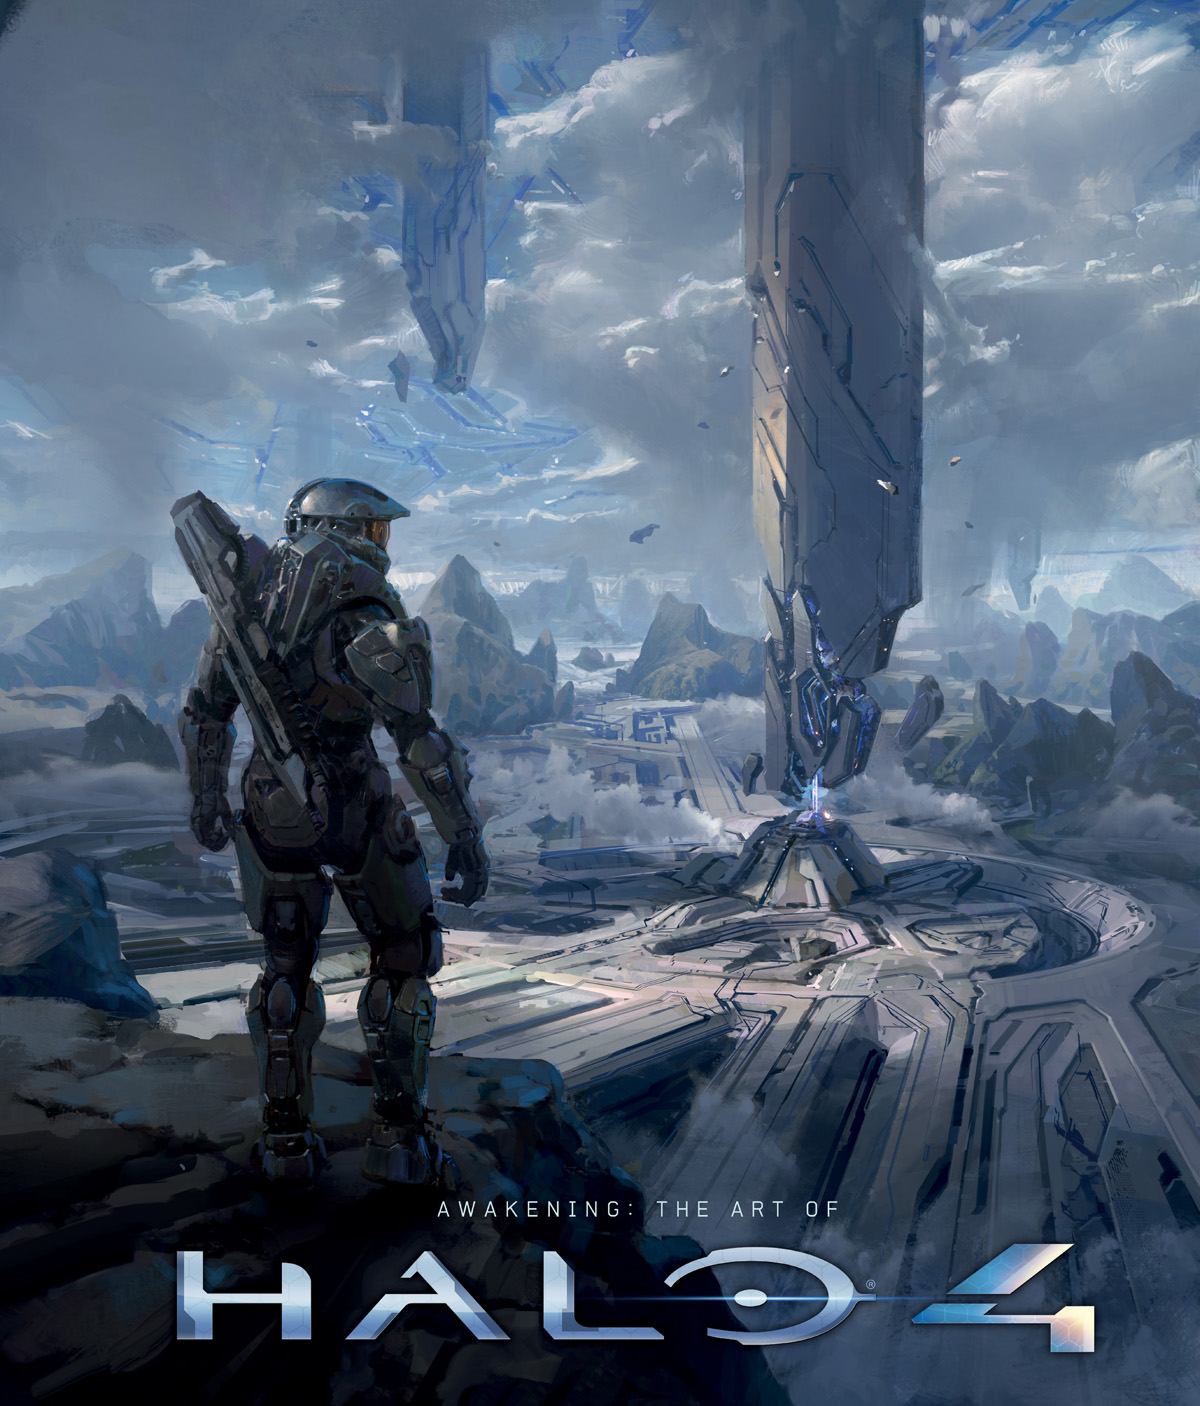 Pictures Of Awakening The Art Of Halo 4 6 6